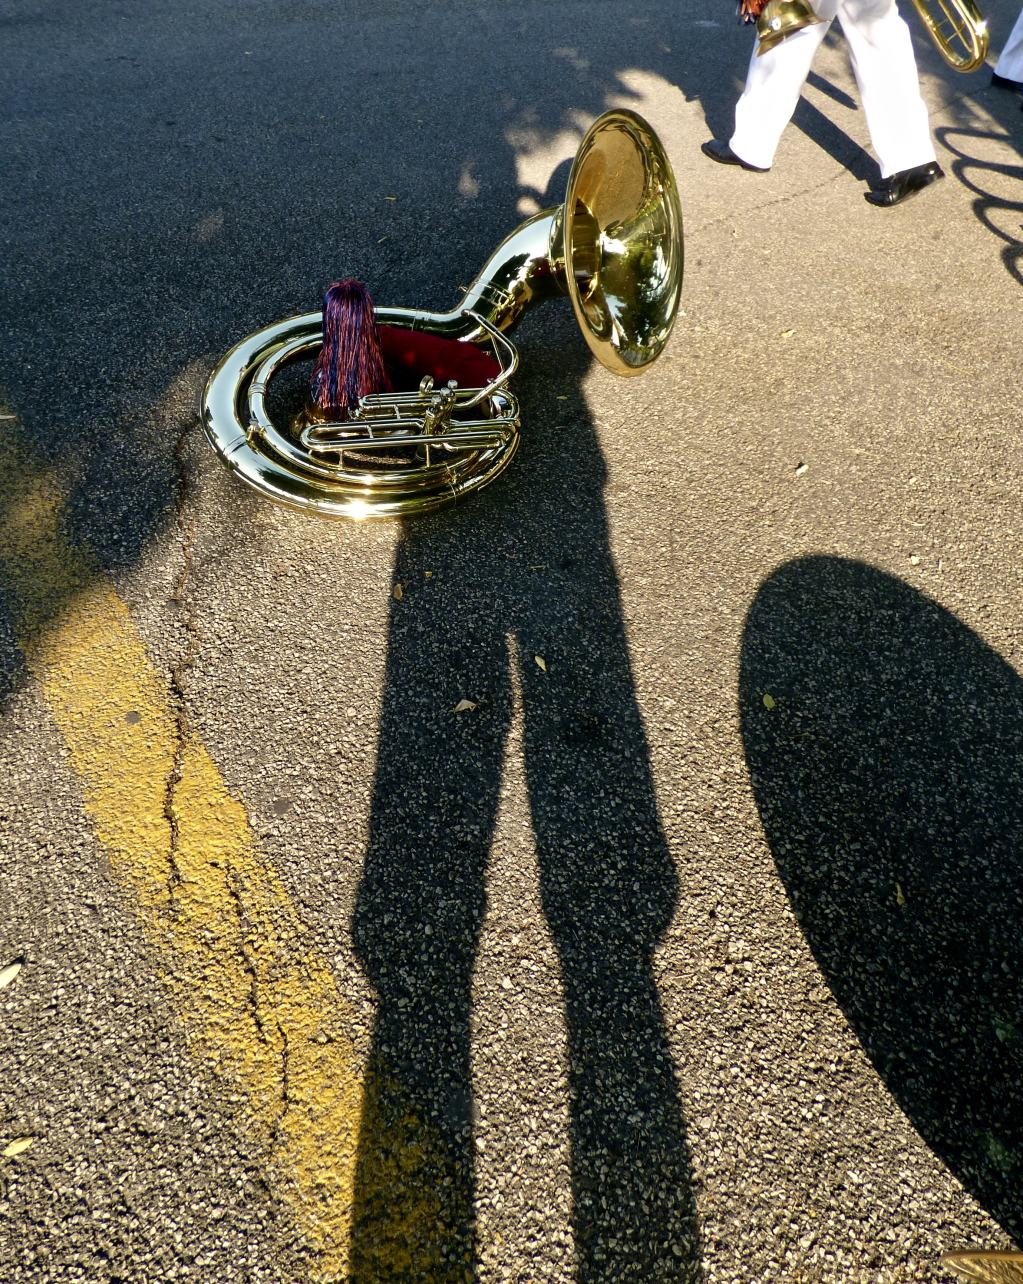 Self Portrait, with Sousaphone 2018